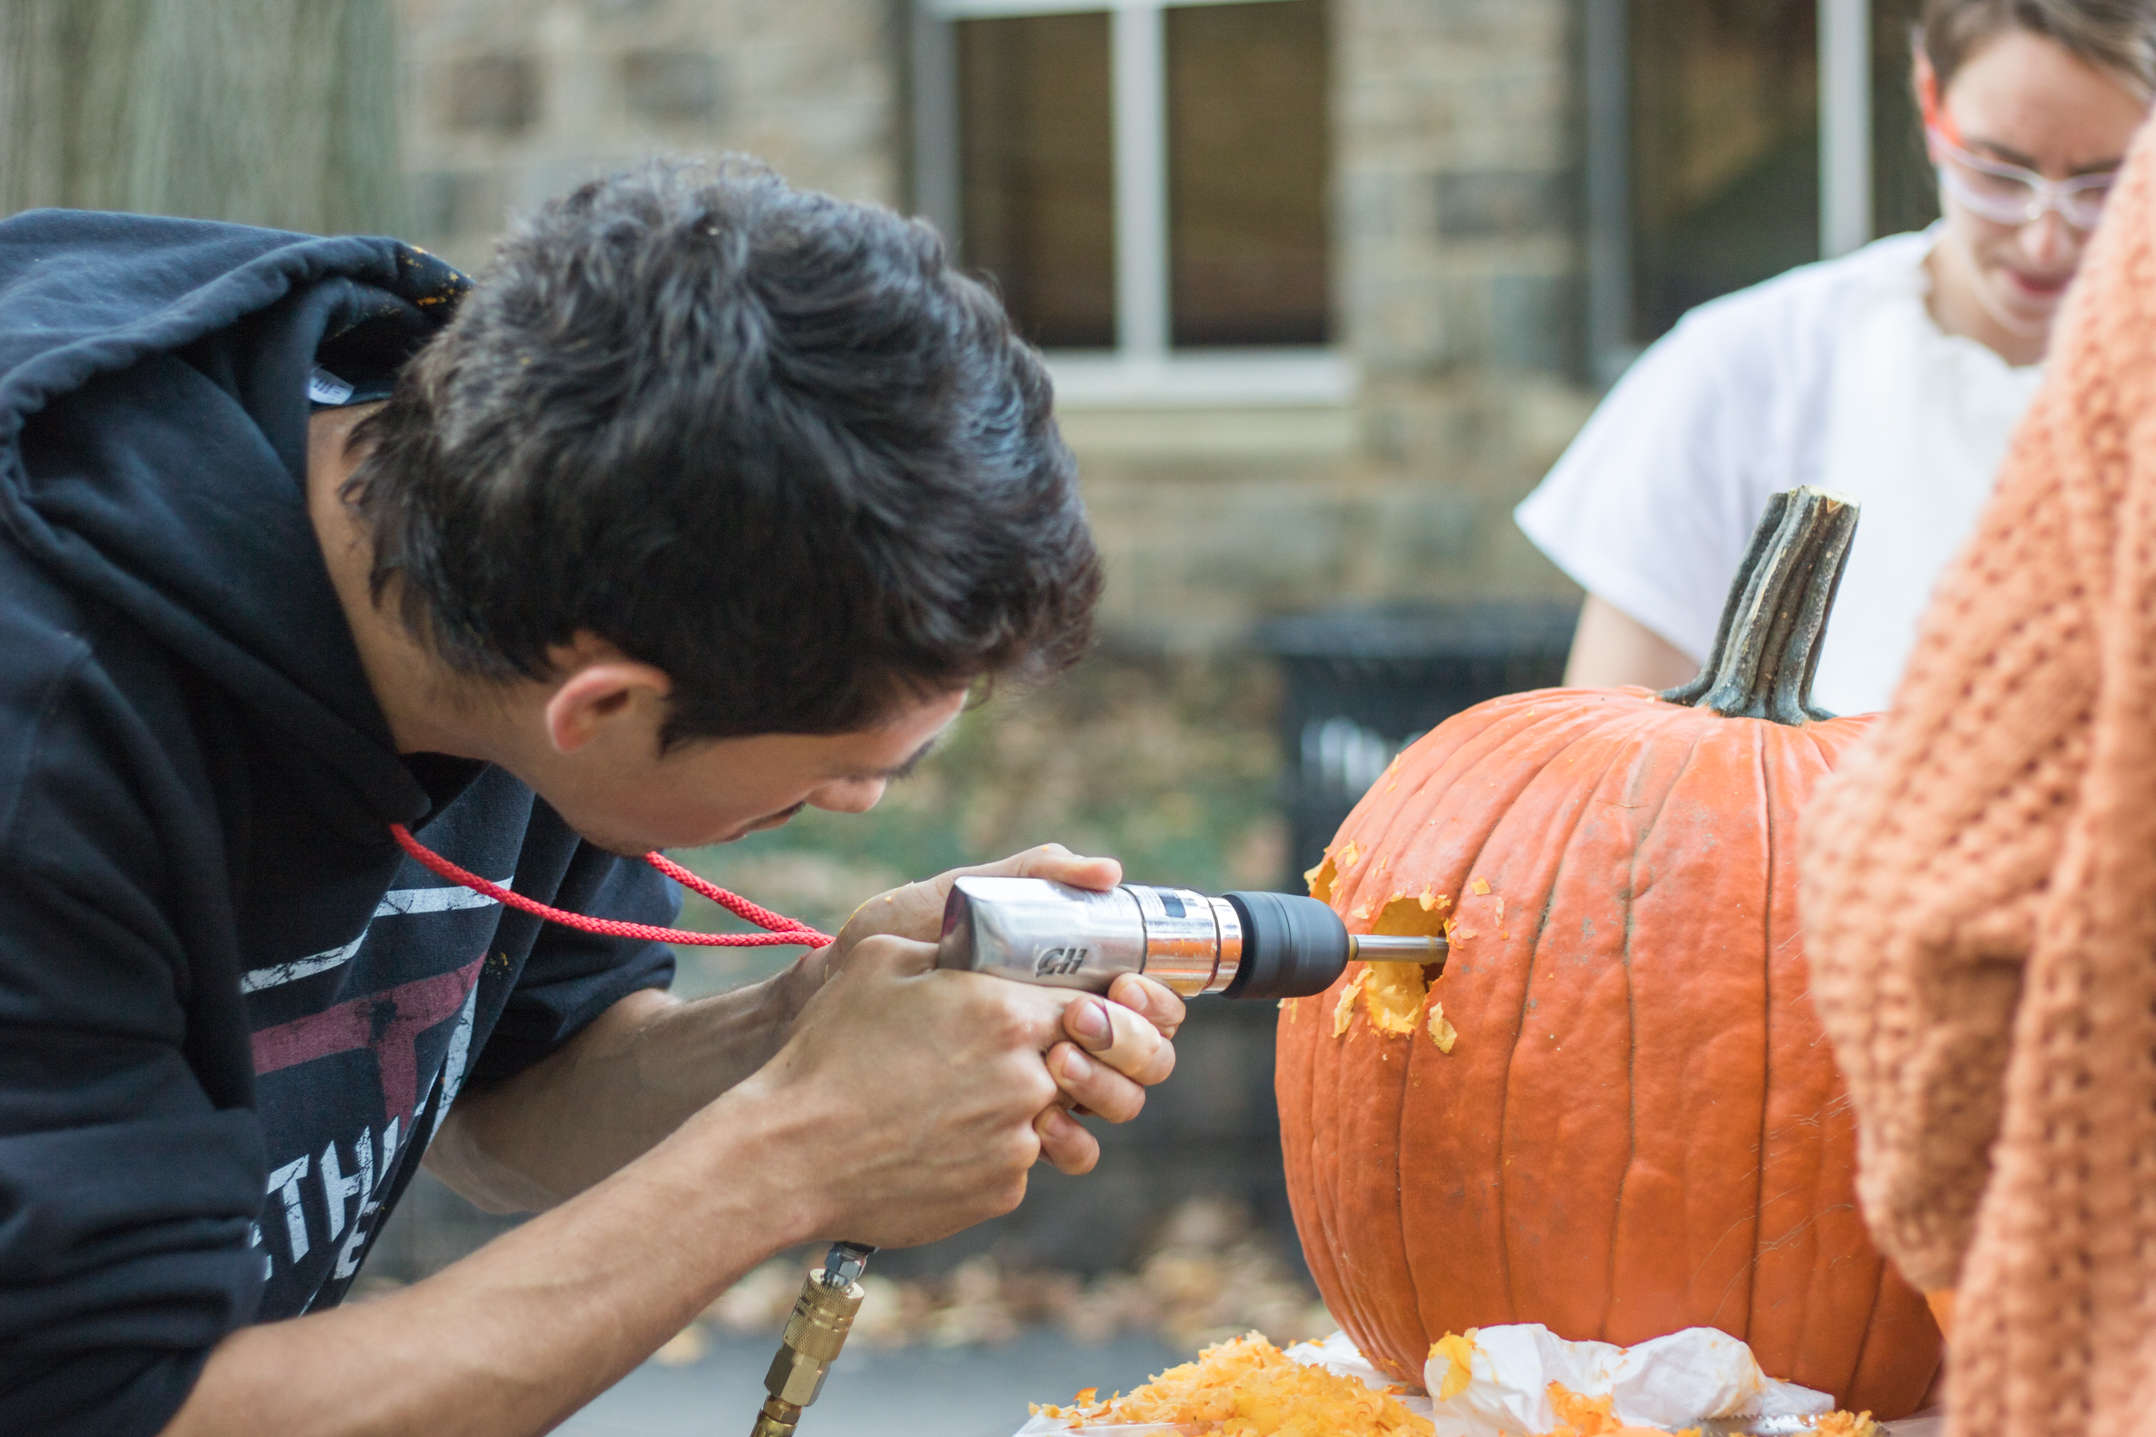 Sam Joynson, '18, uses a power tool to make holes in his pumpkin Oct. 27 outside of Wilbur Powerhouse. The event was led by the Wilbur Powerhouse team as part of the MakeX series. (Sam Henry/B&W Staff)